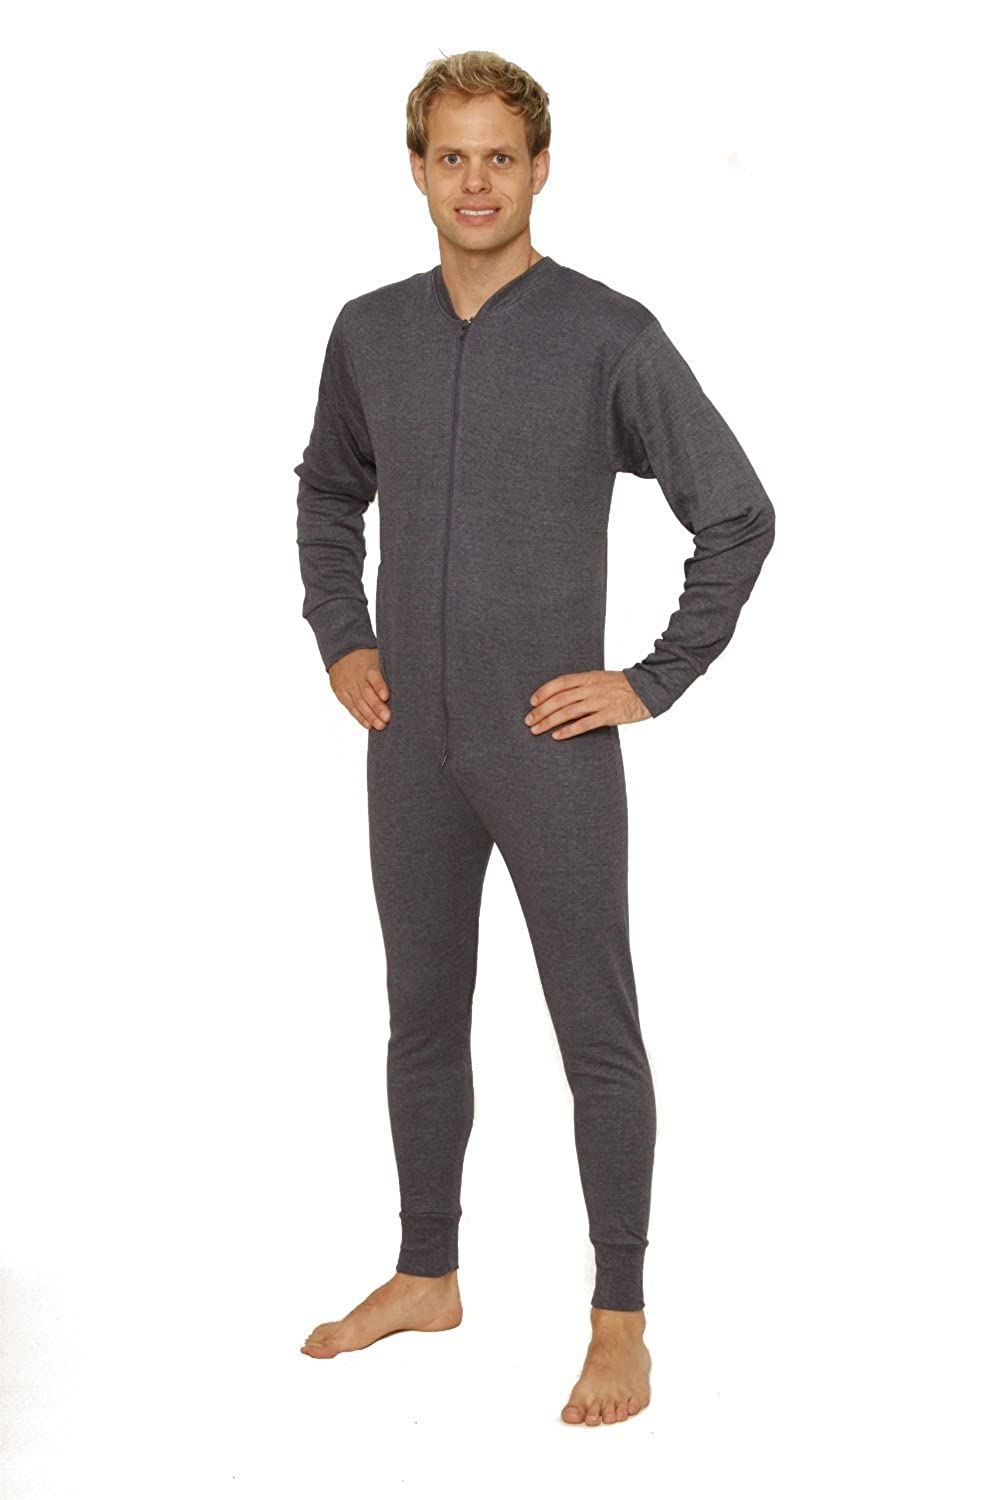 OCTAVE® Mens Thermal Underwear All In One Union Suit / Thermal ...